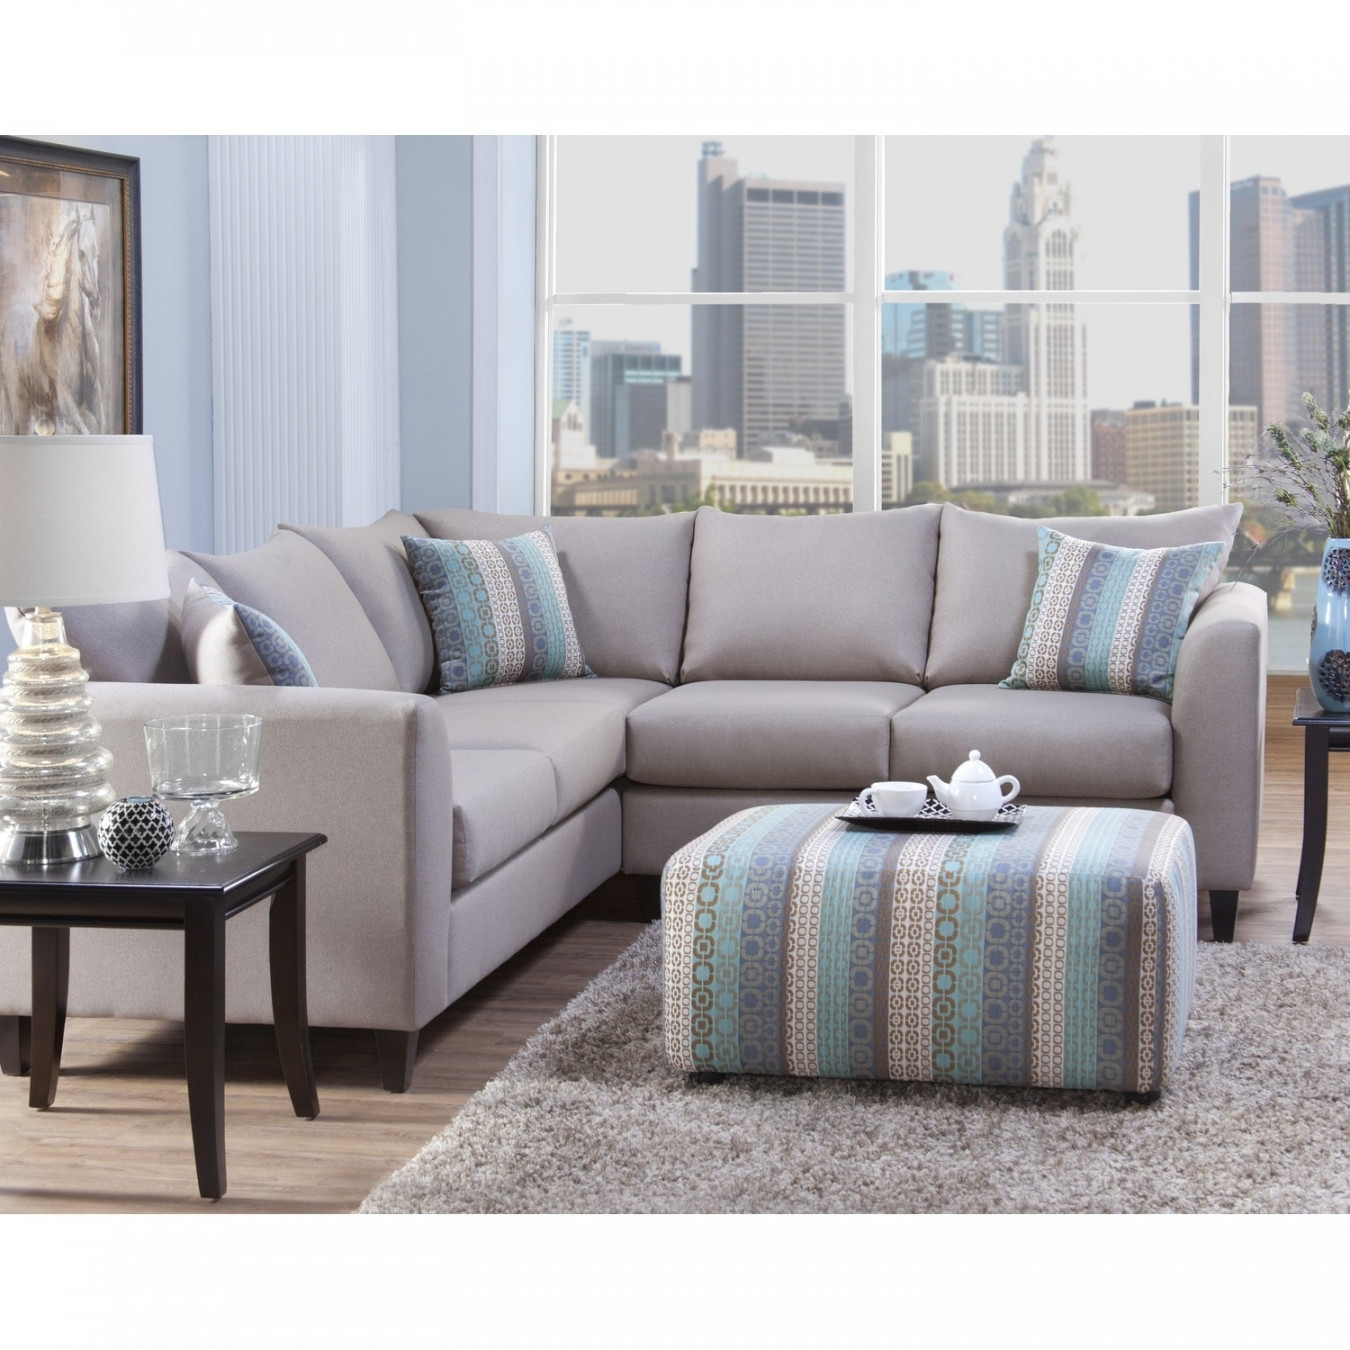 Unique Best Wayfair Sectional Sofa – Mediasupload | House Decoration With Regard To Wayfair Sectional Sofas (Photo 3 of 10)